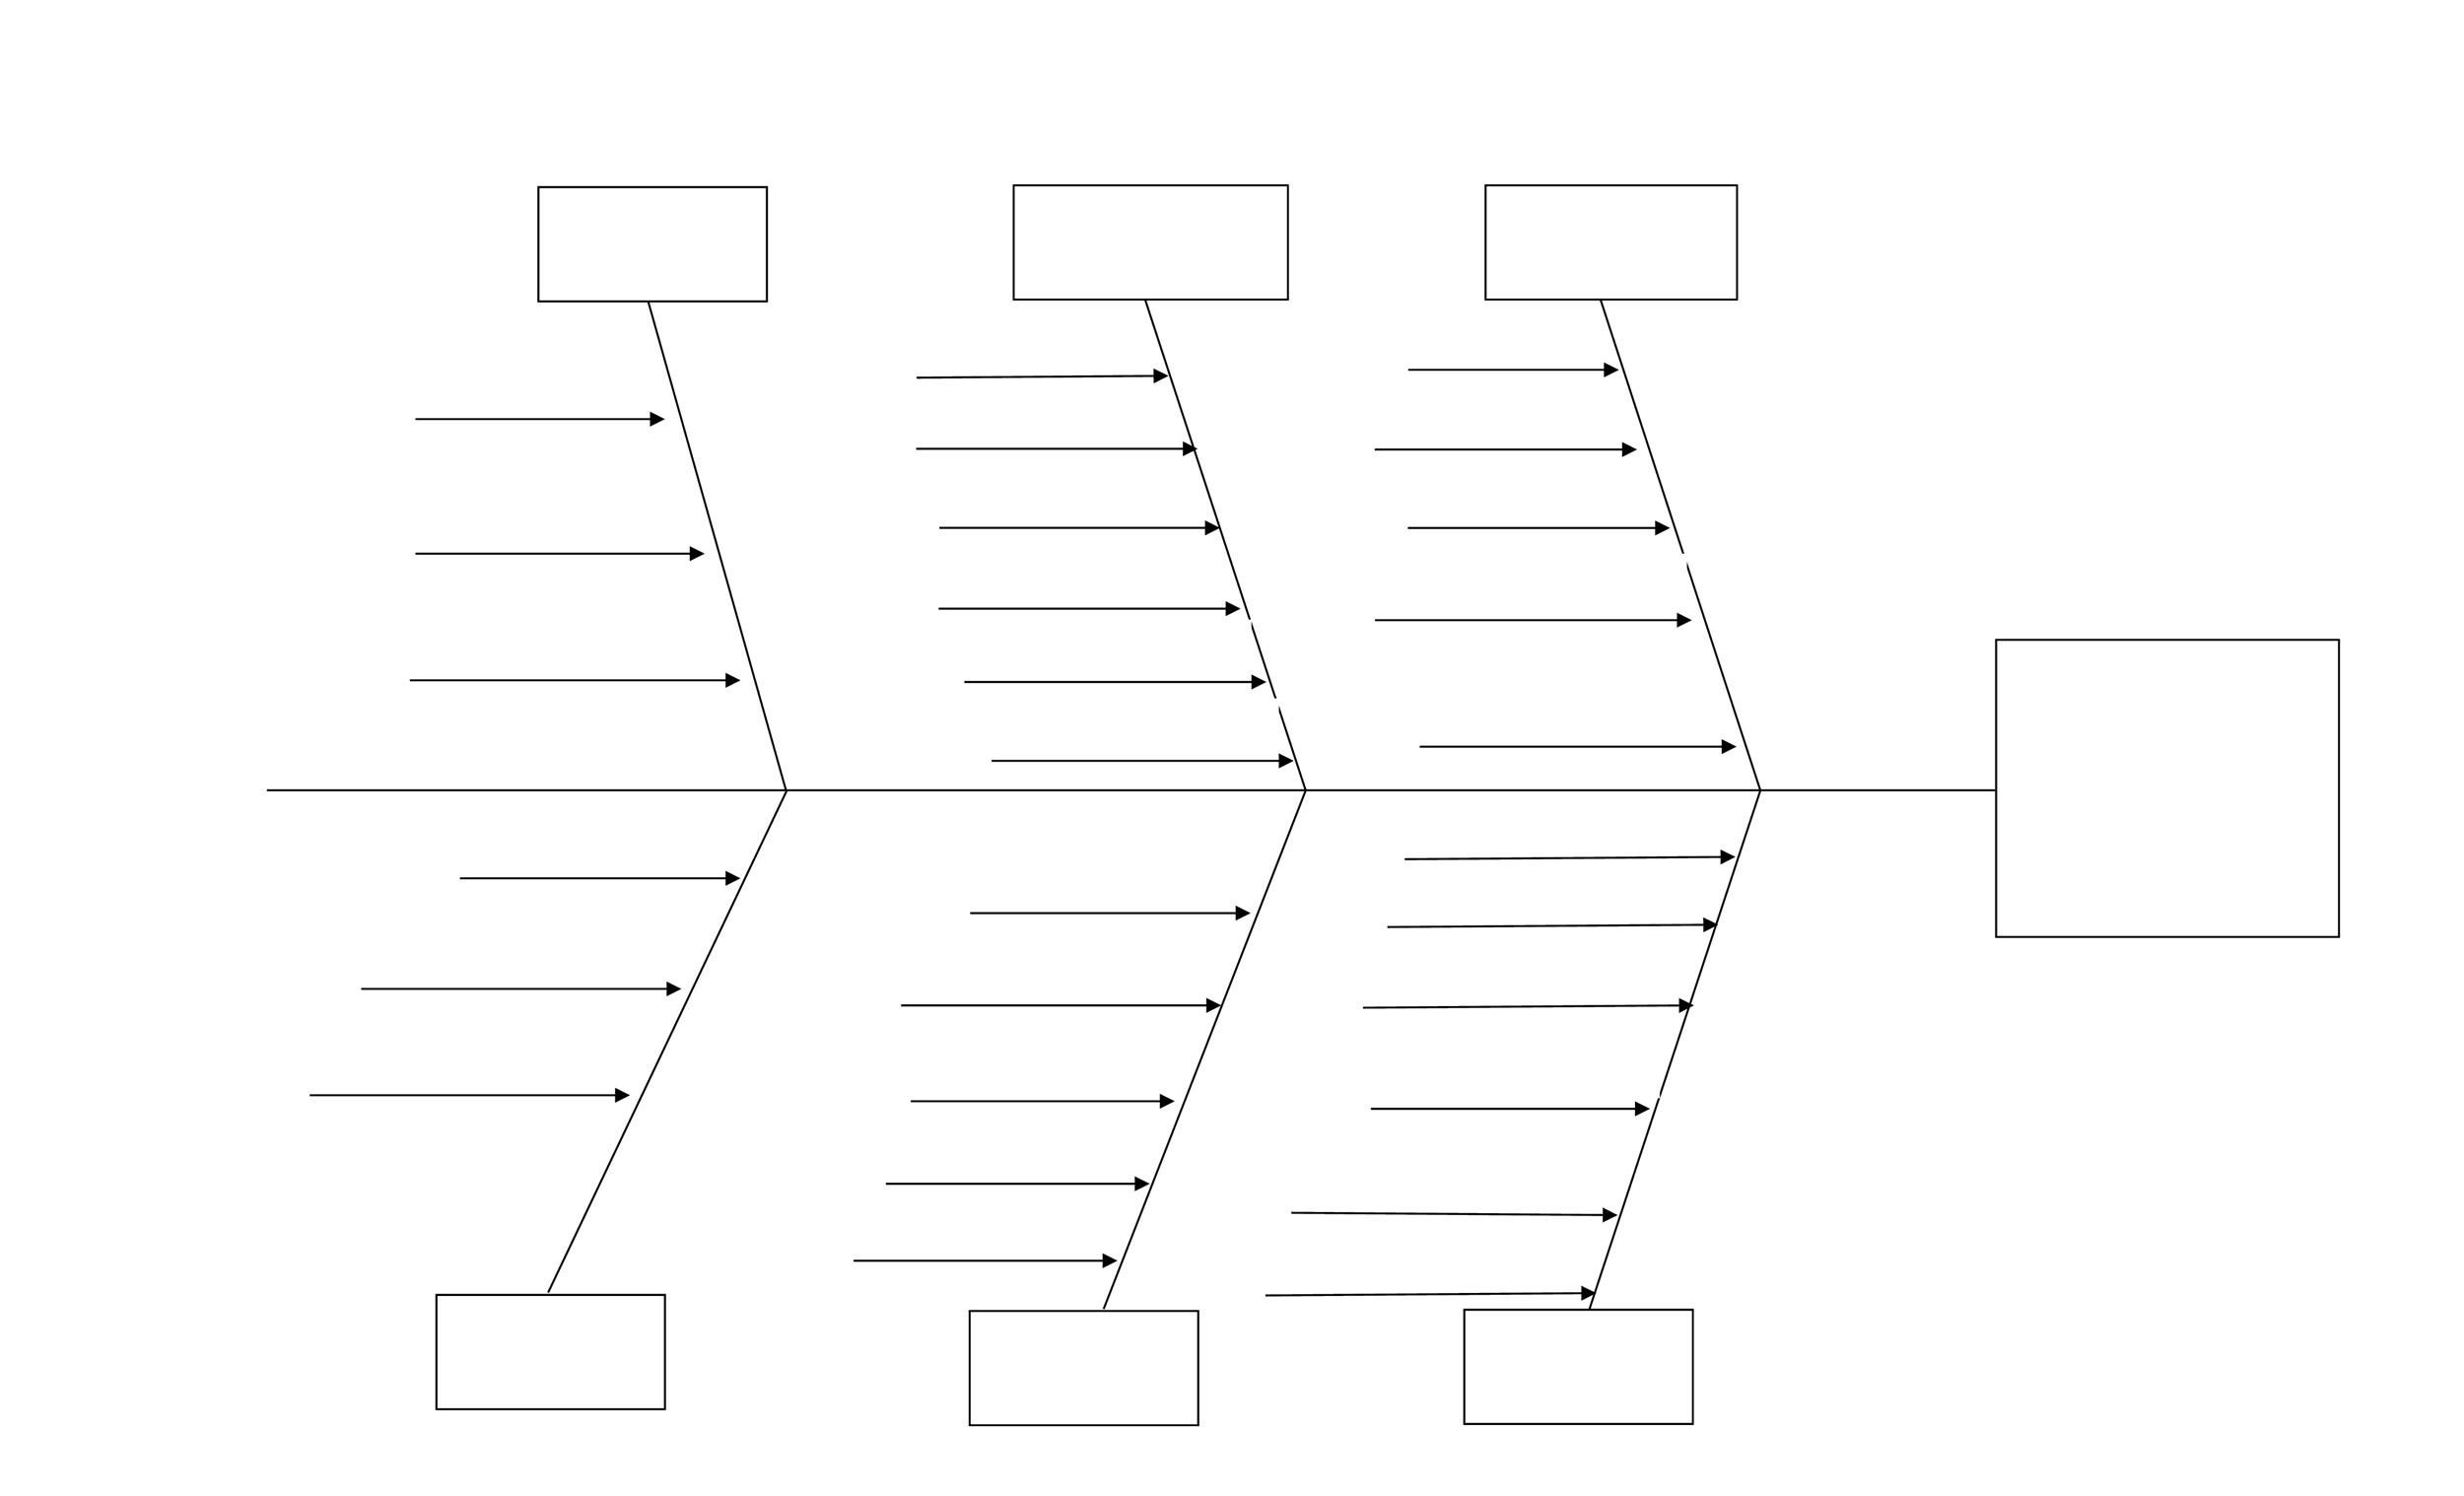 002 Dreaded Free Fishbone Diagram Template Microsoft Word Highest Clarity Full